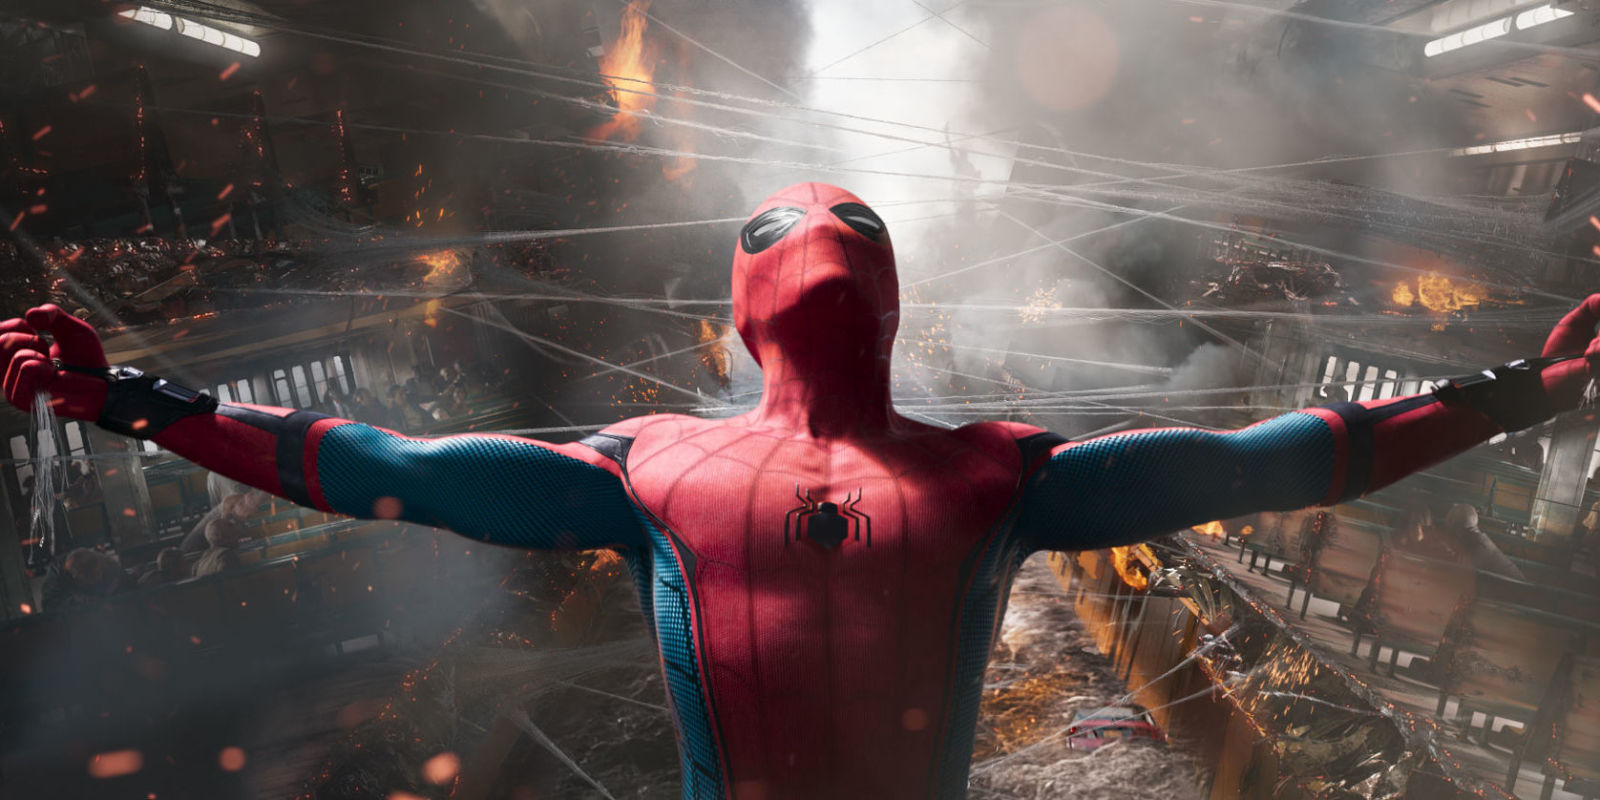 spider-man: homecoming footage